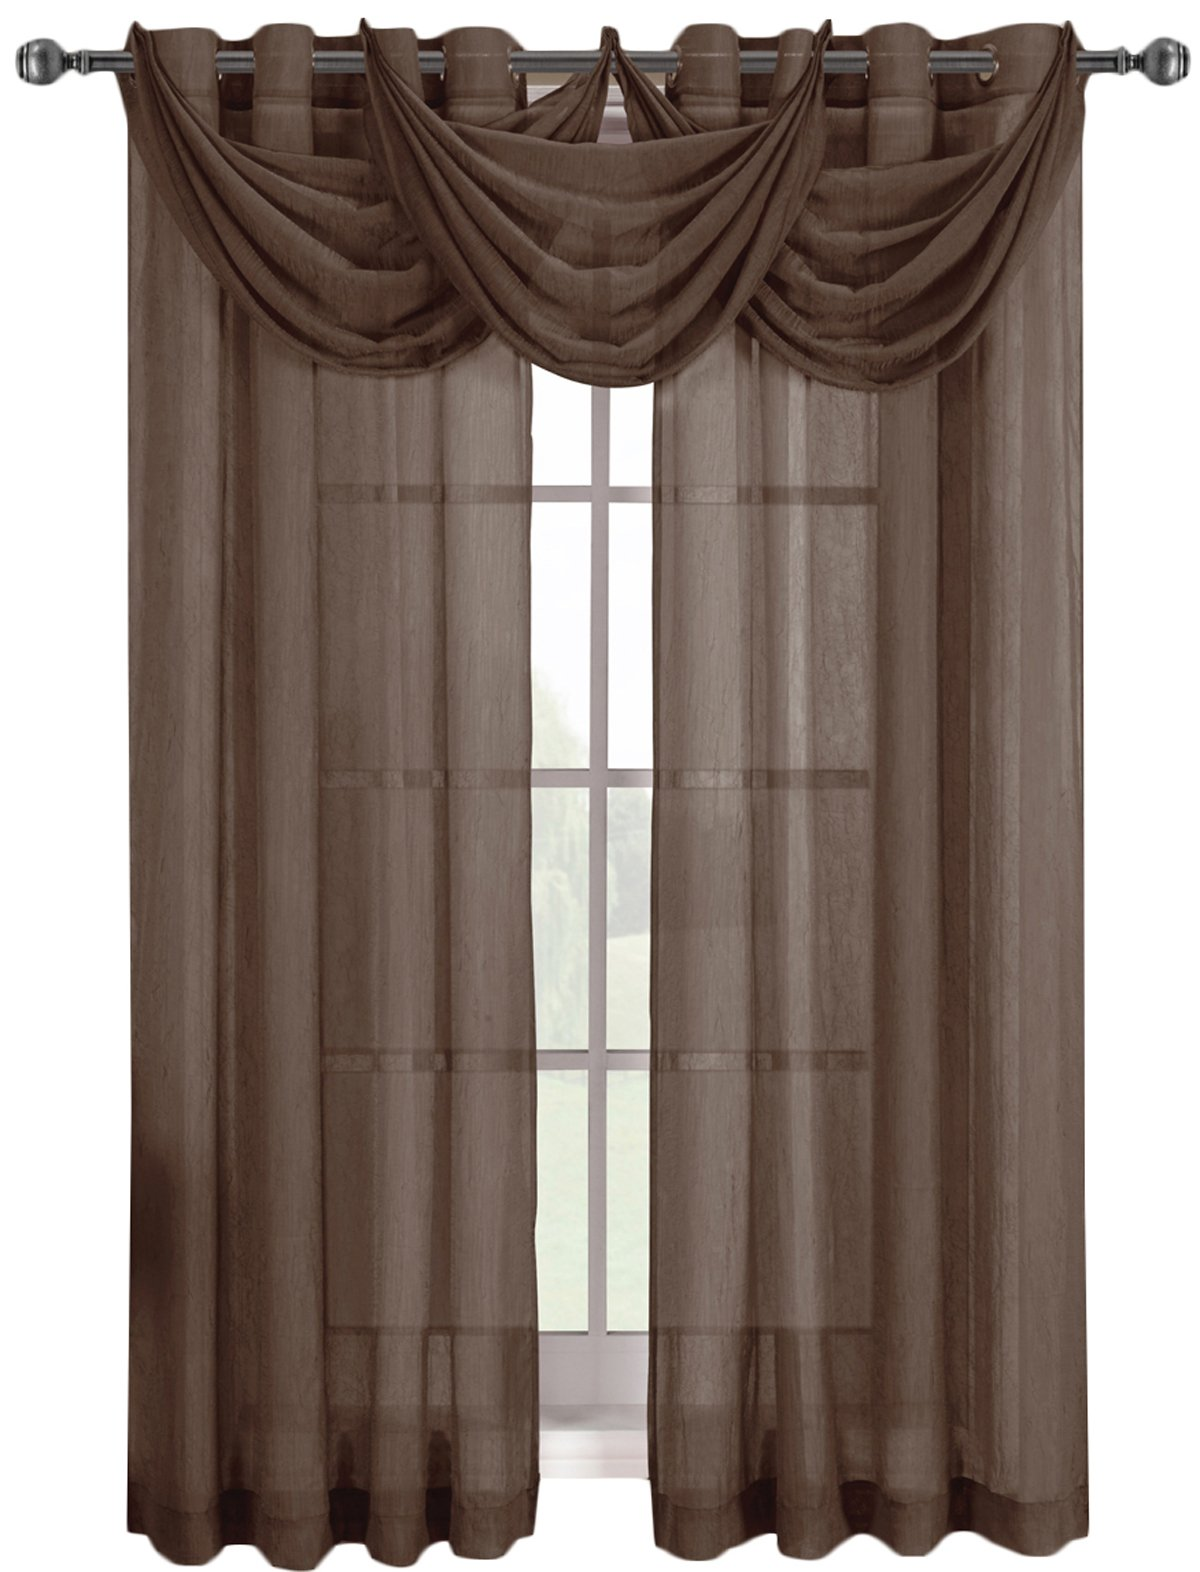 Royal Hotel Abri Chocolate-Brown Grommet Crushed Sheer Curtain Panel, 50x84 inches